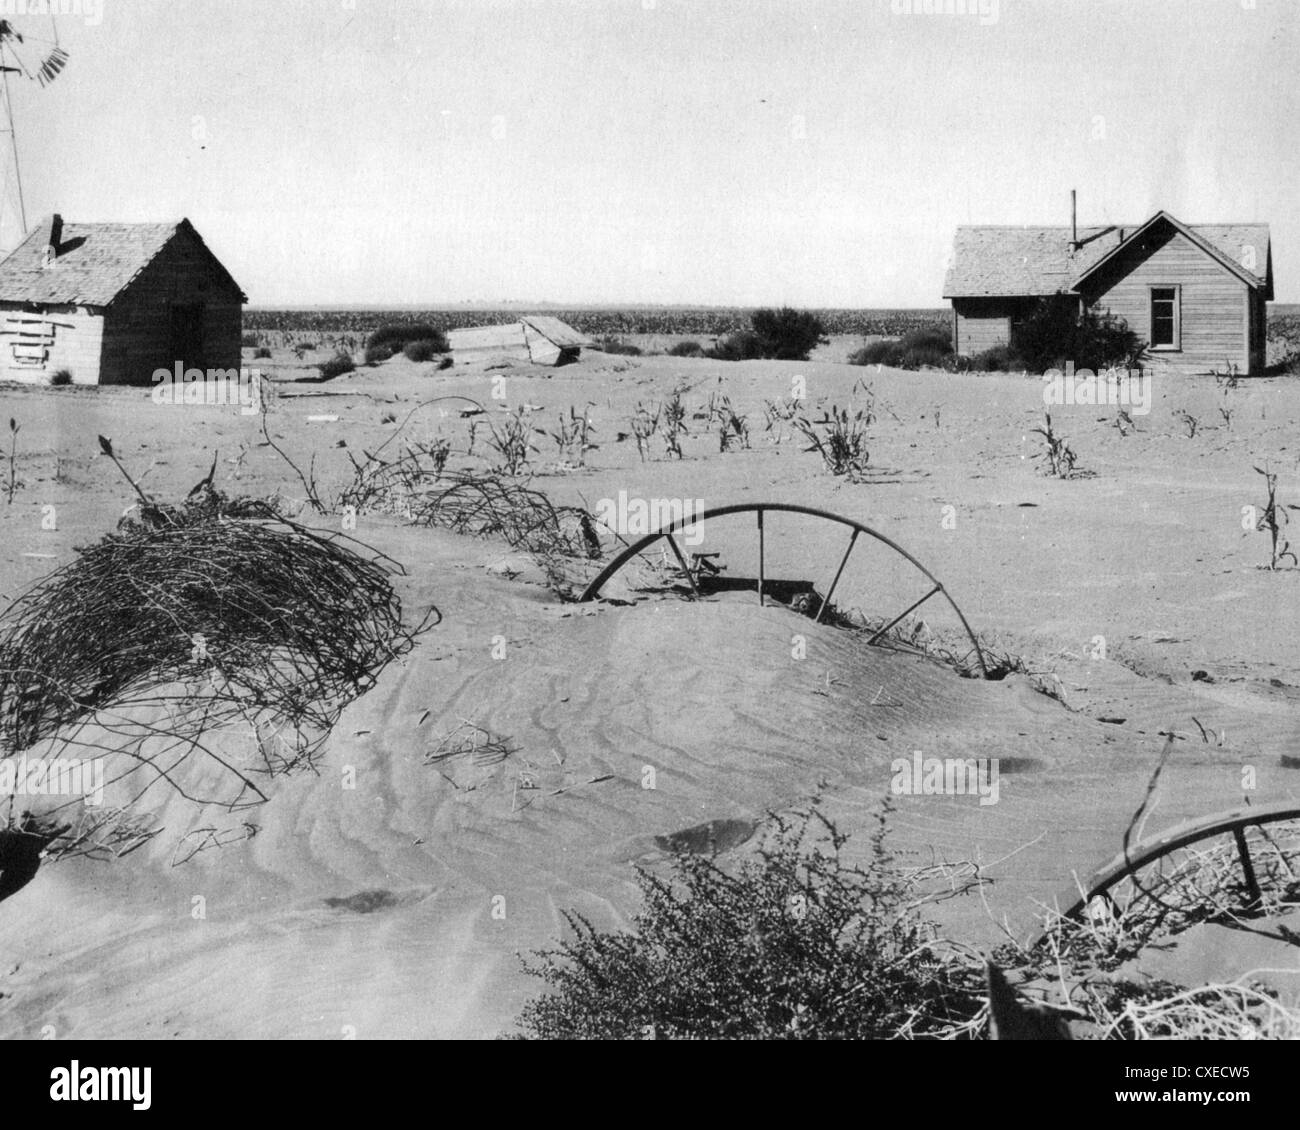 DUST STORM effect on an Oklahoma farm in 1937 from soil blown in from th Great Plains - Stock Image